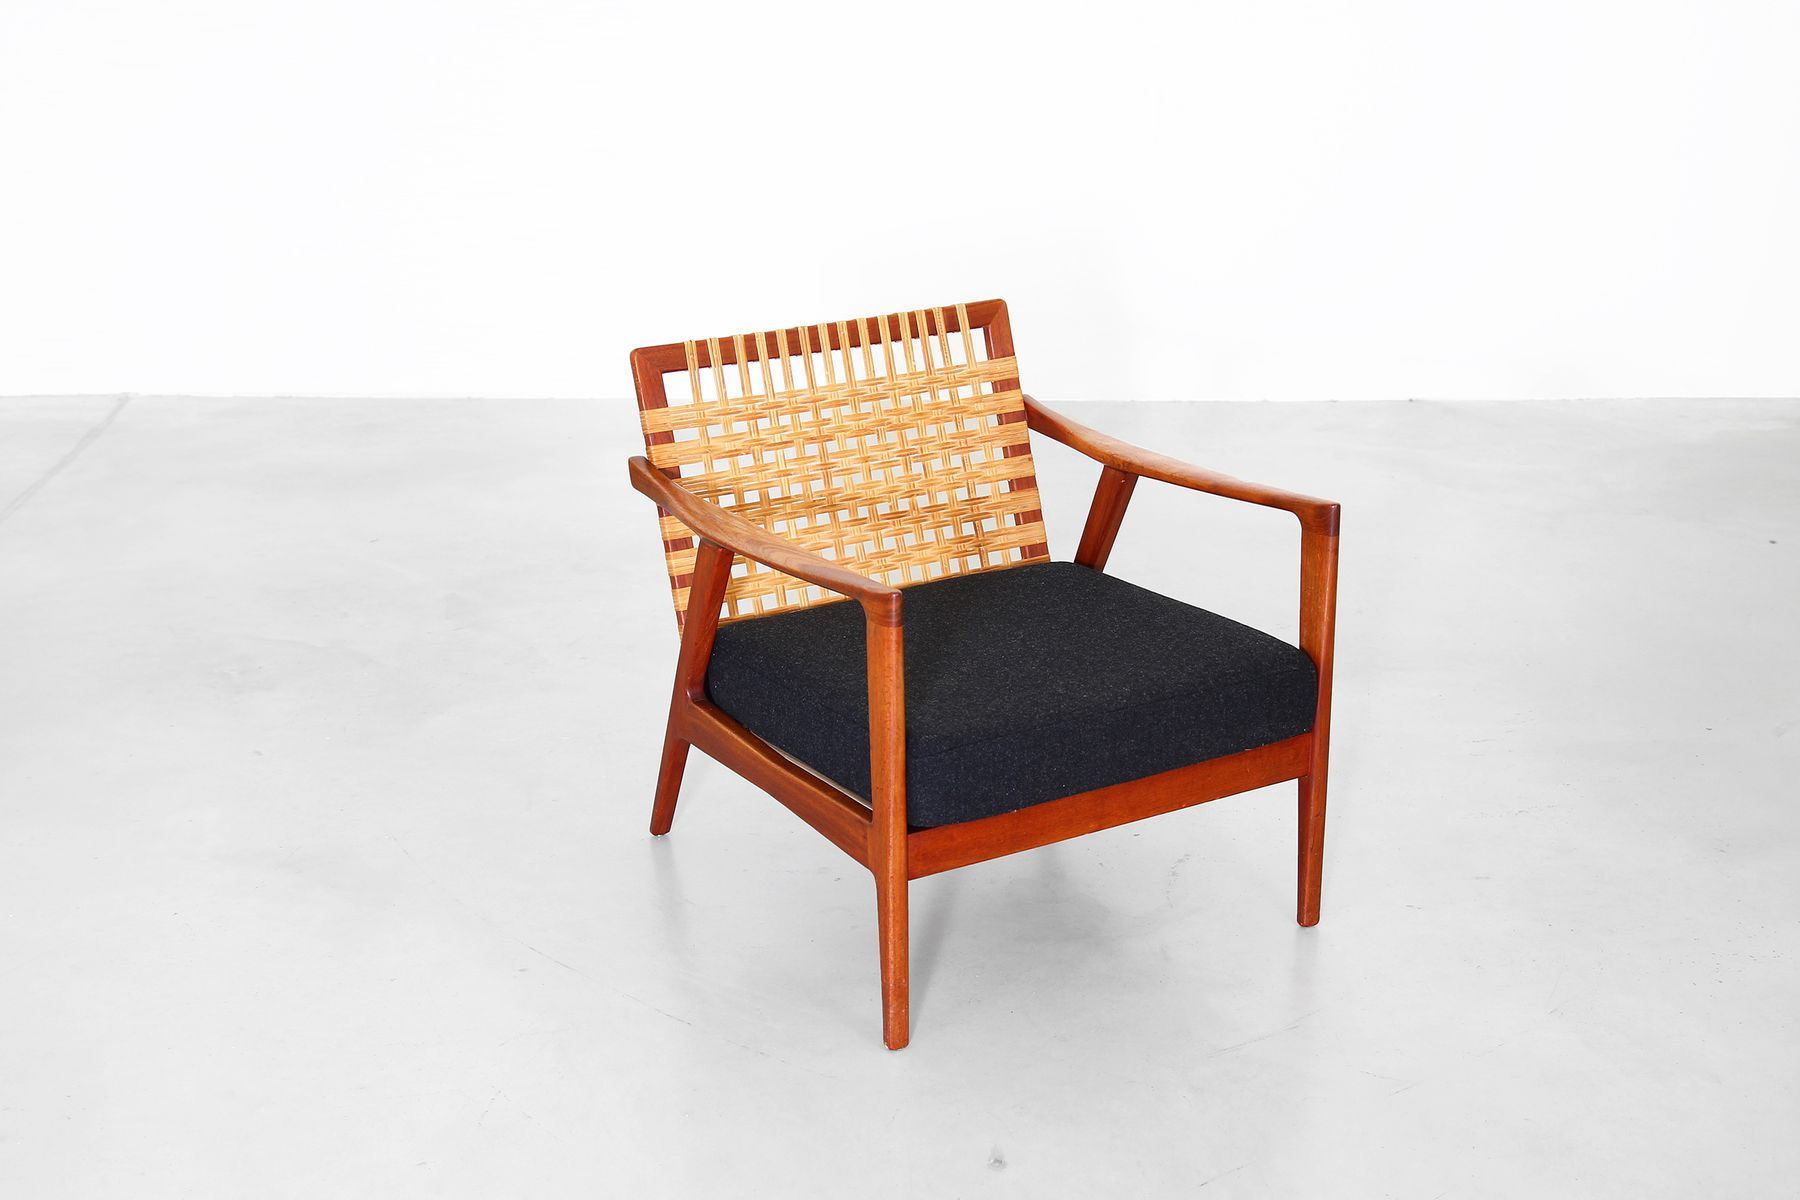 Vintage Danish Lounge Chair with Woven Backrest for sale at Pamono